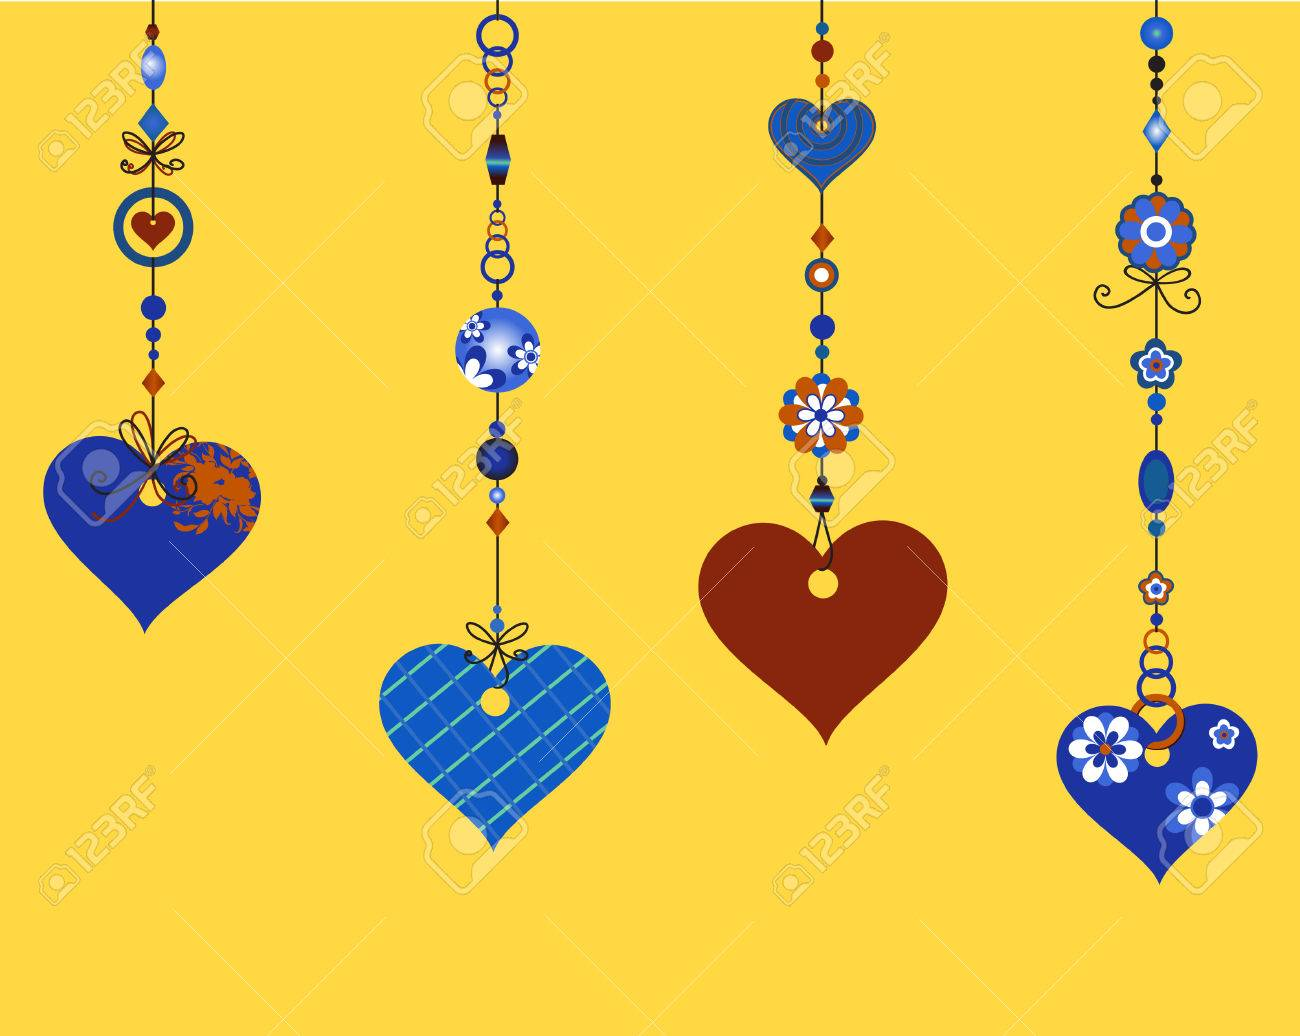 Vector Illustration Of Decorative Wind Chimes With Fanky Heart